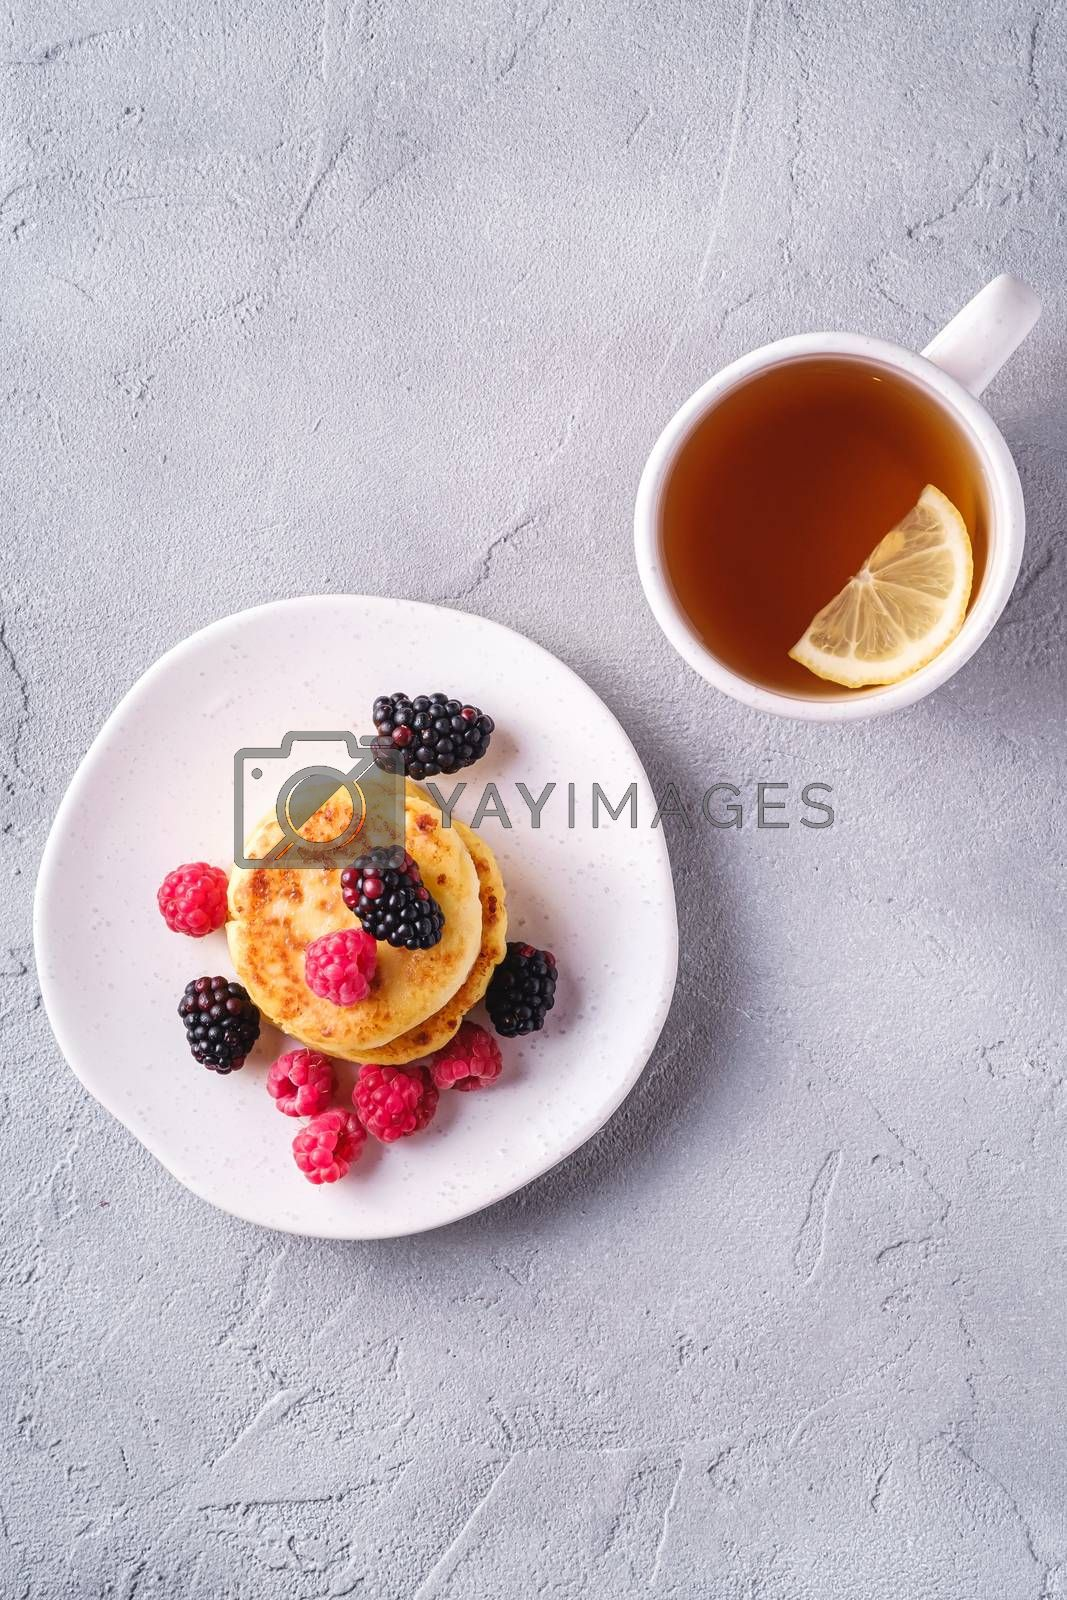 Cottage cheese pancakes, curd fritters dessert with raspberry and blackberry berries in plate near to hot tea cup with lemon slice on stone concrete background, top view